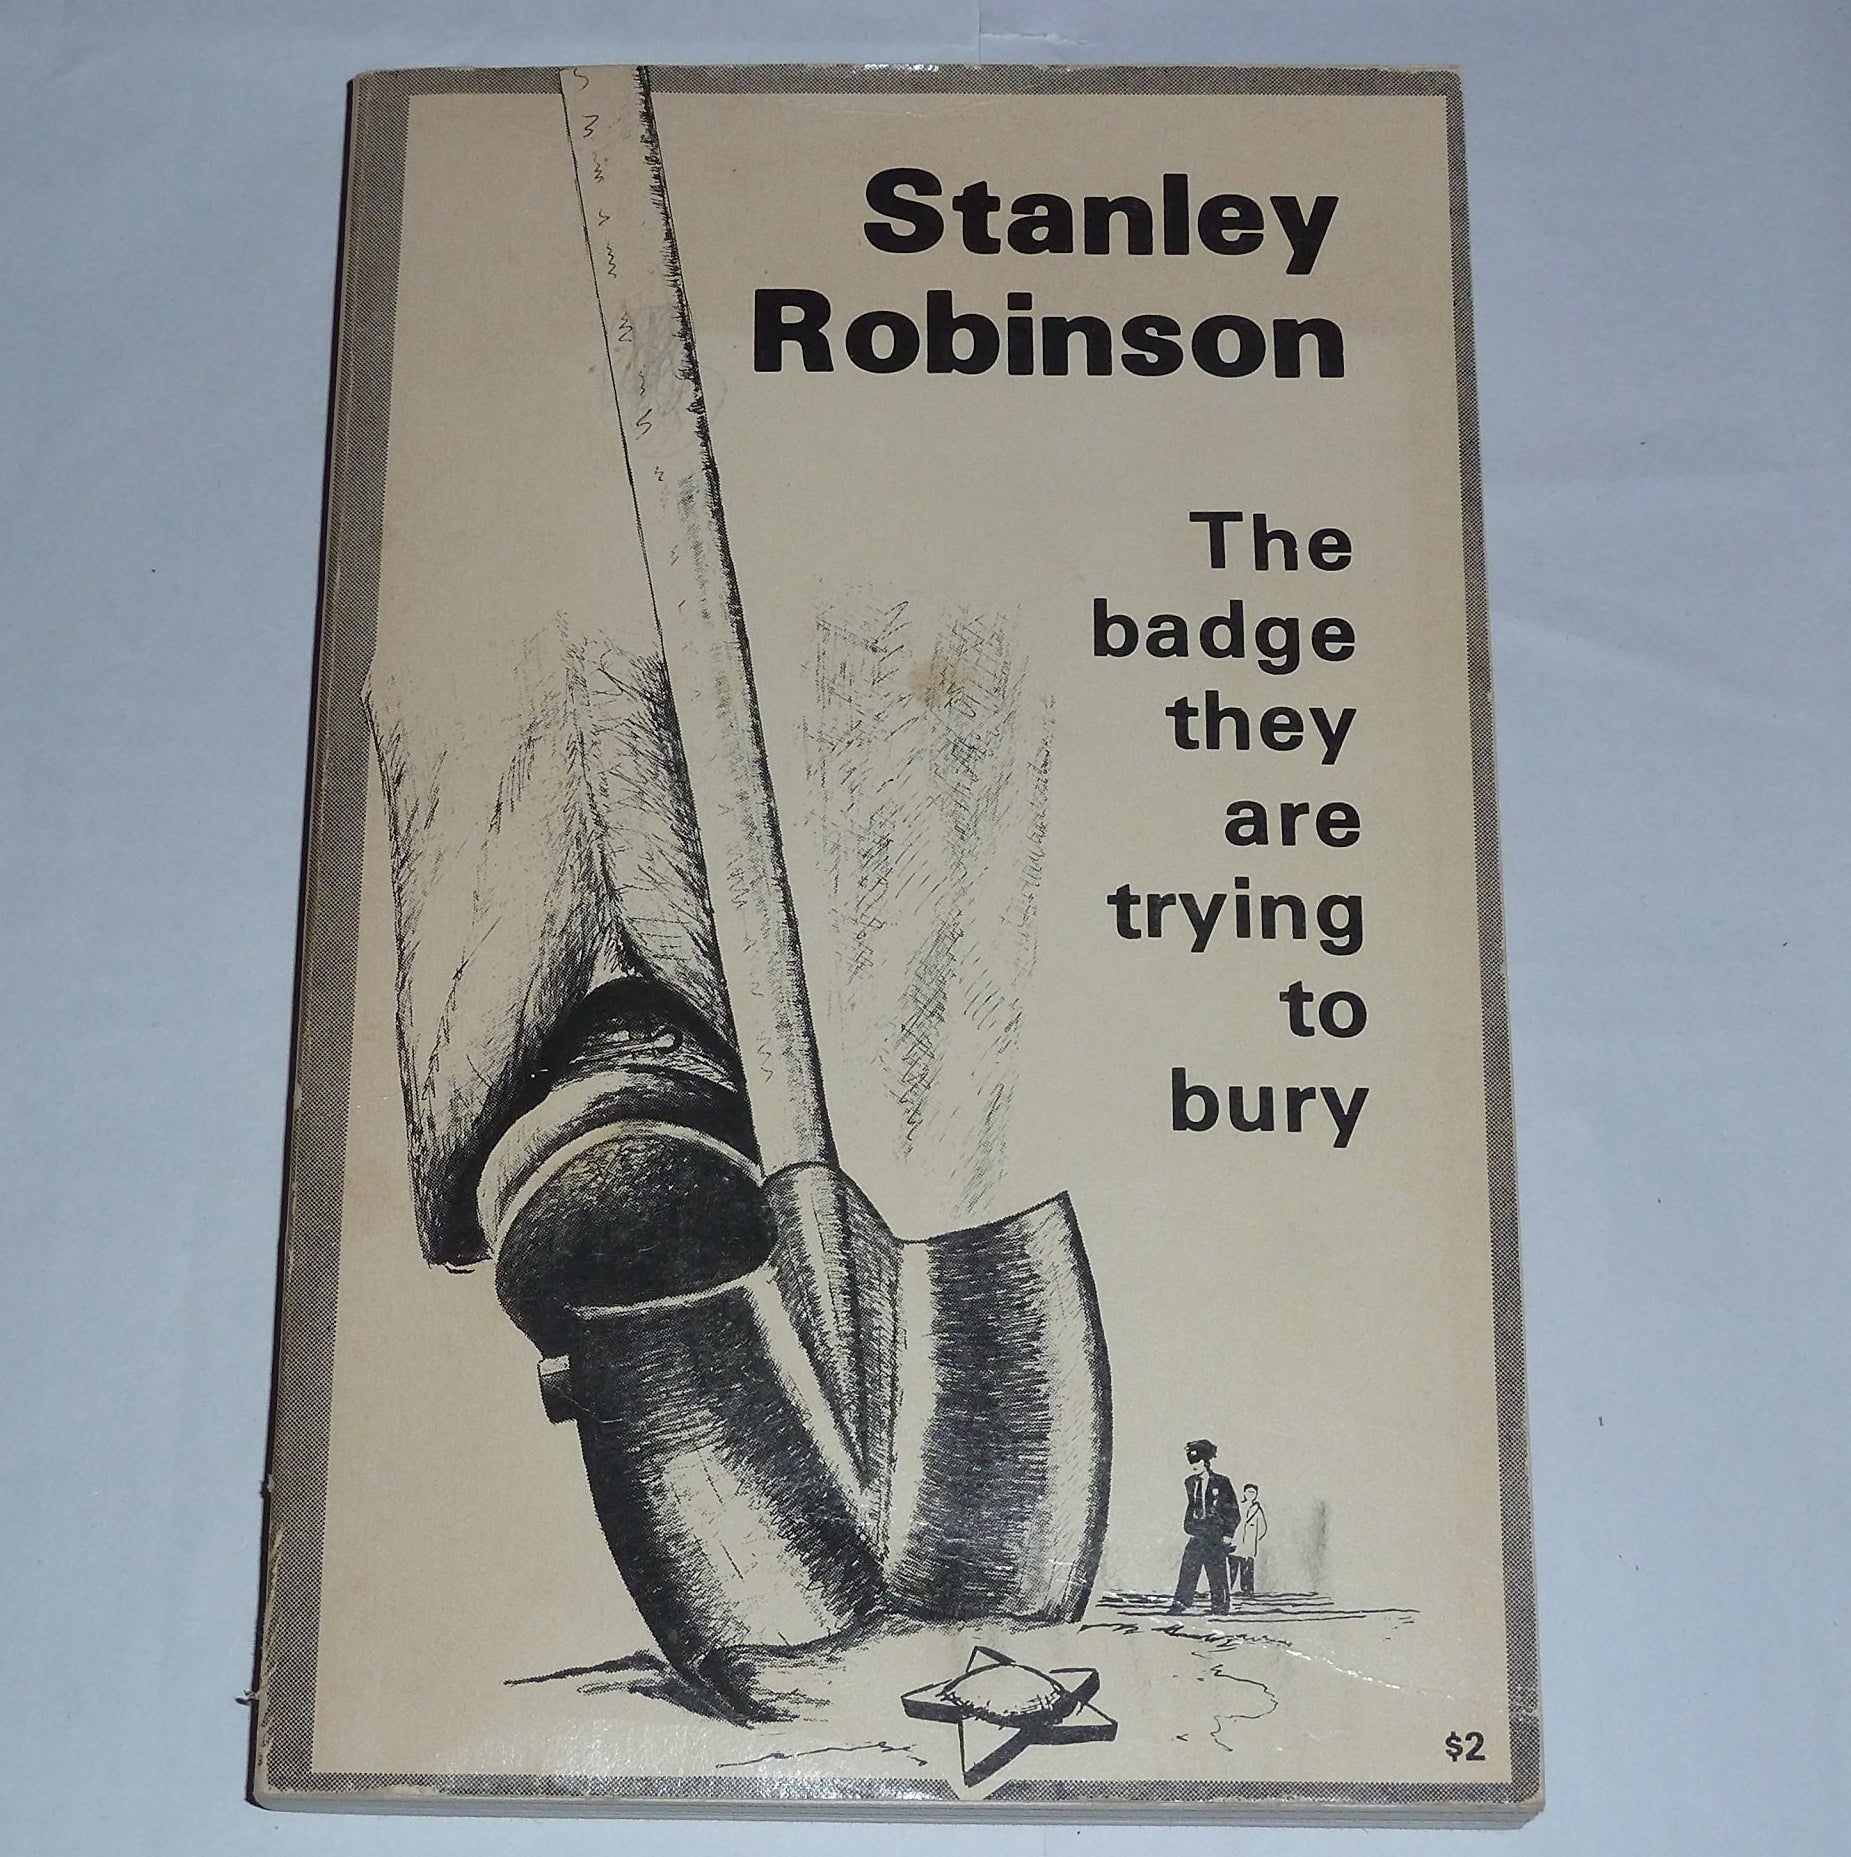 Cover of the book showing a drawing of someone using a shovel to bury a police badge